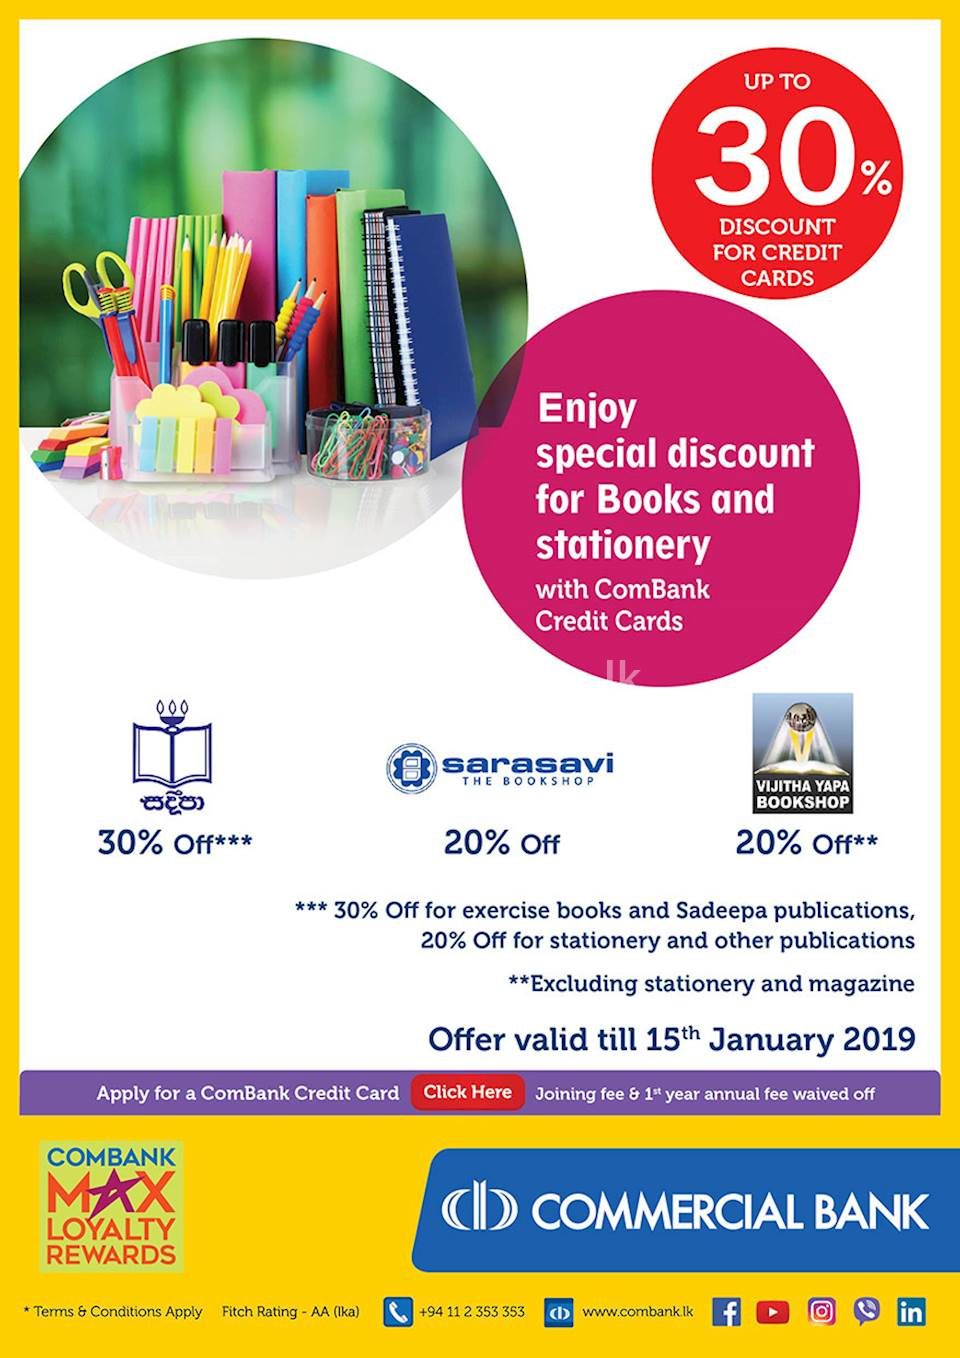 Enjoy special discount for books and stationery with ComBank Credit Cards.